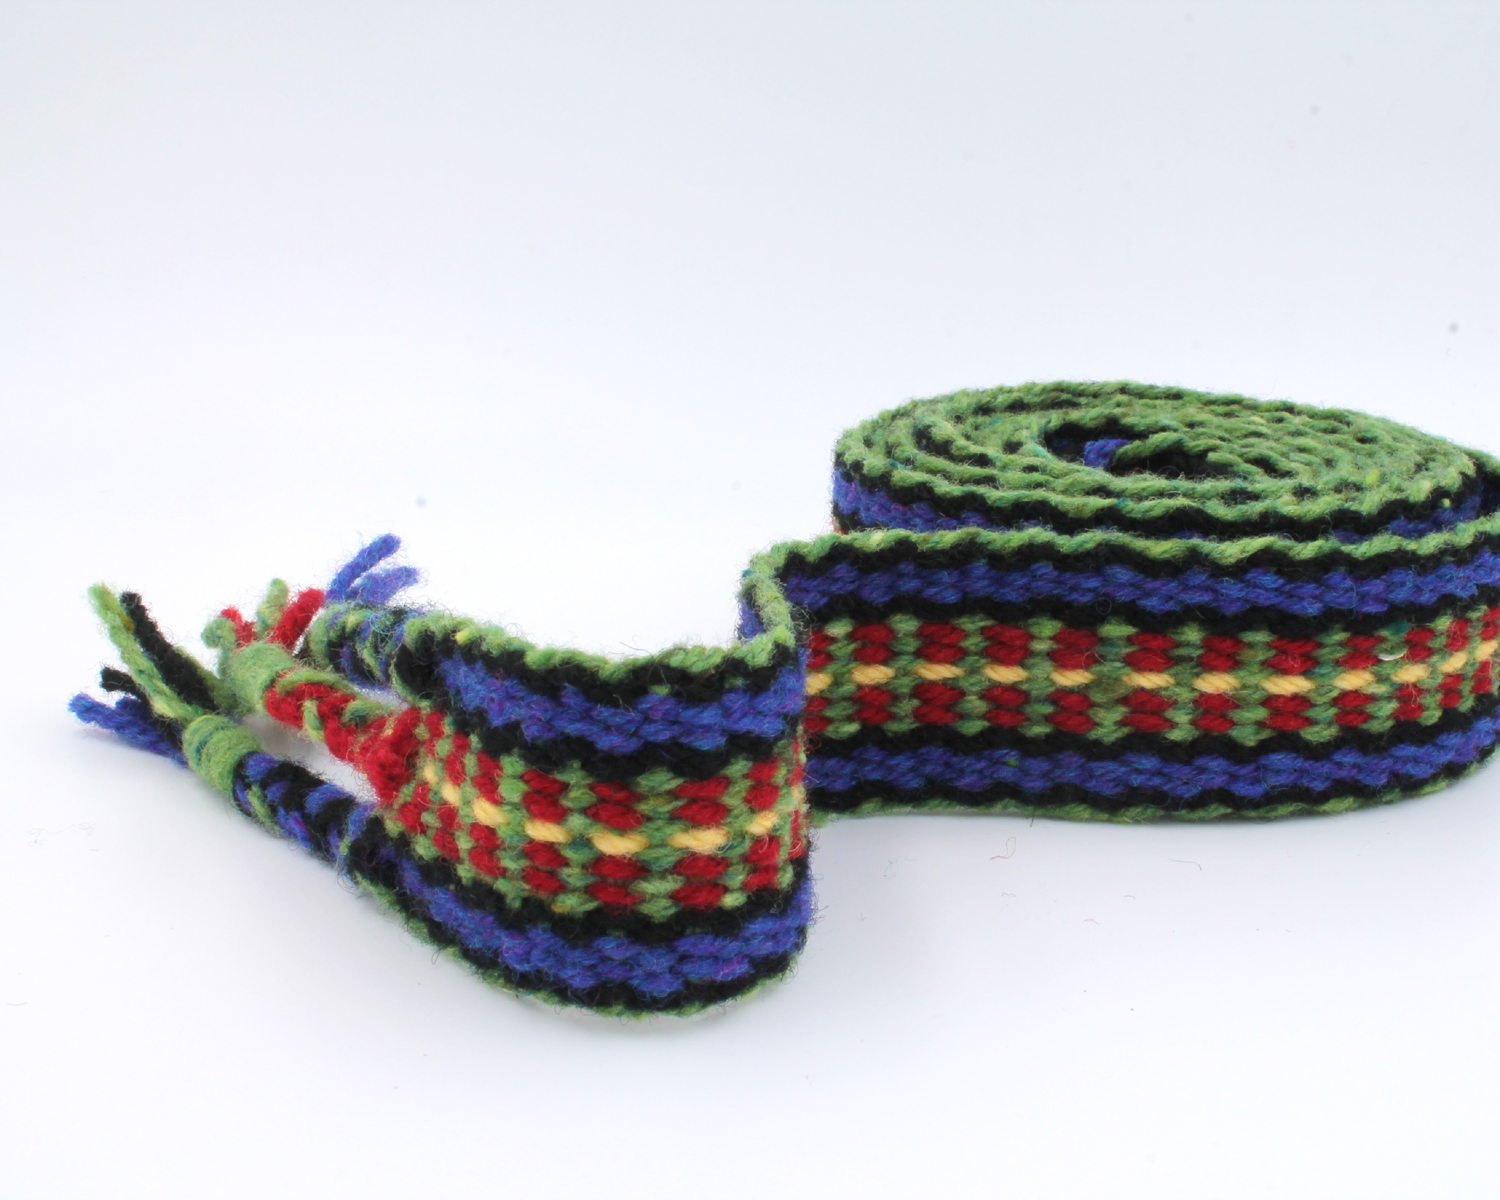 Handfasting Cord - Aran Islands 1